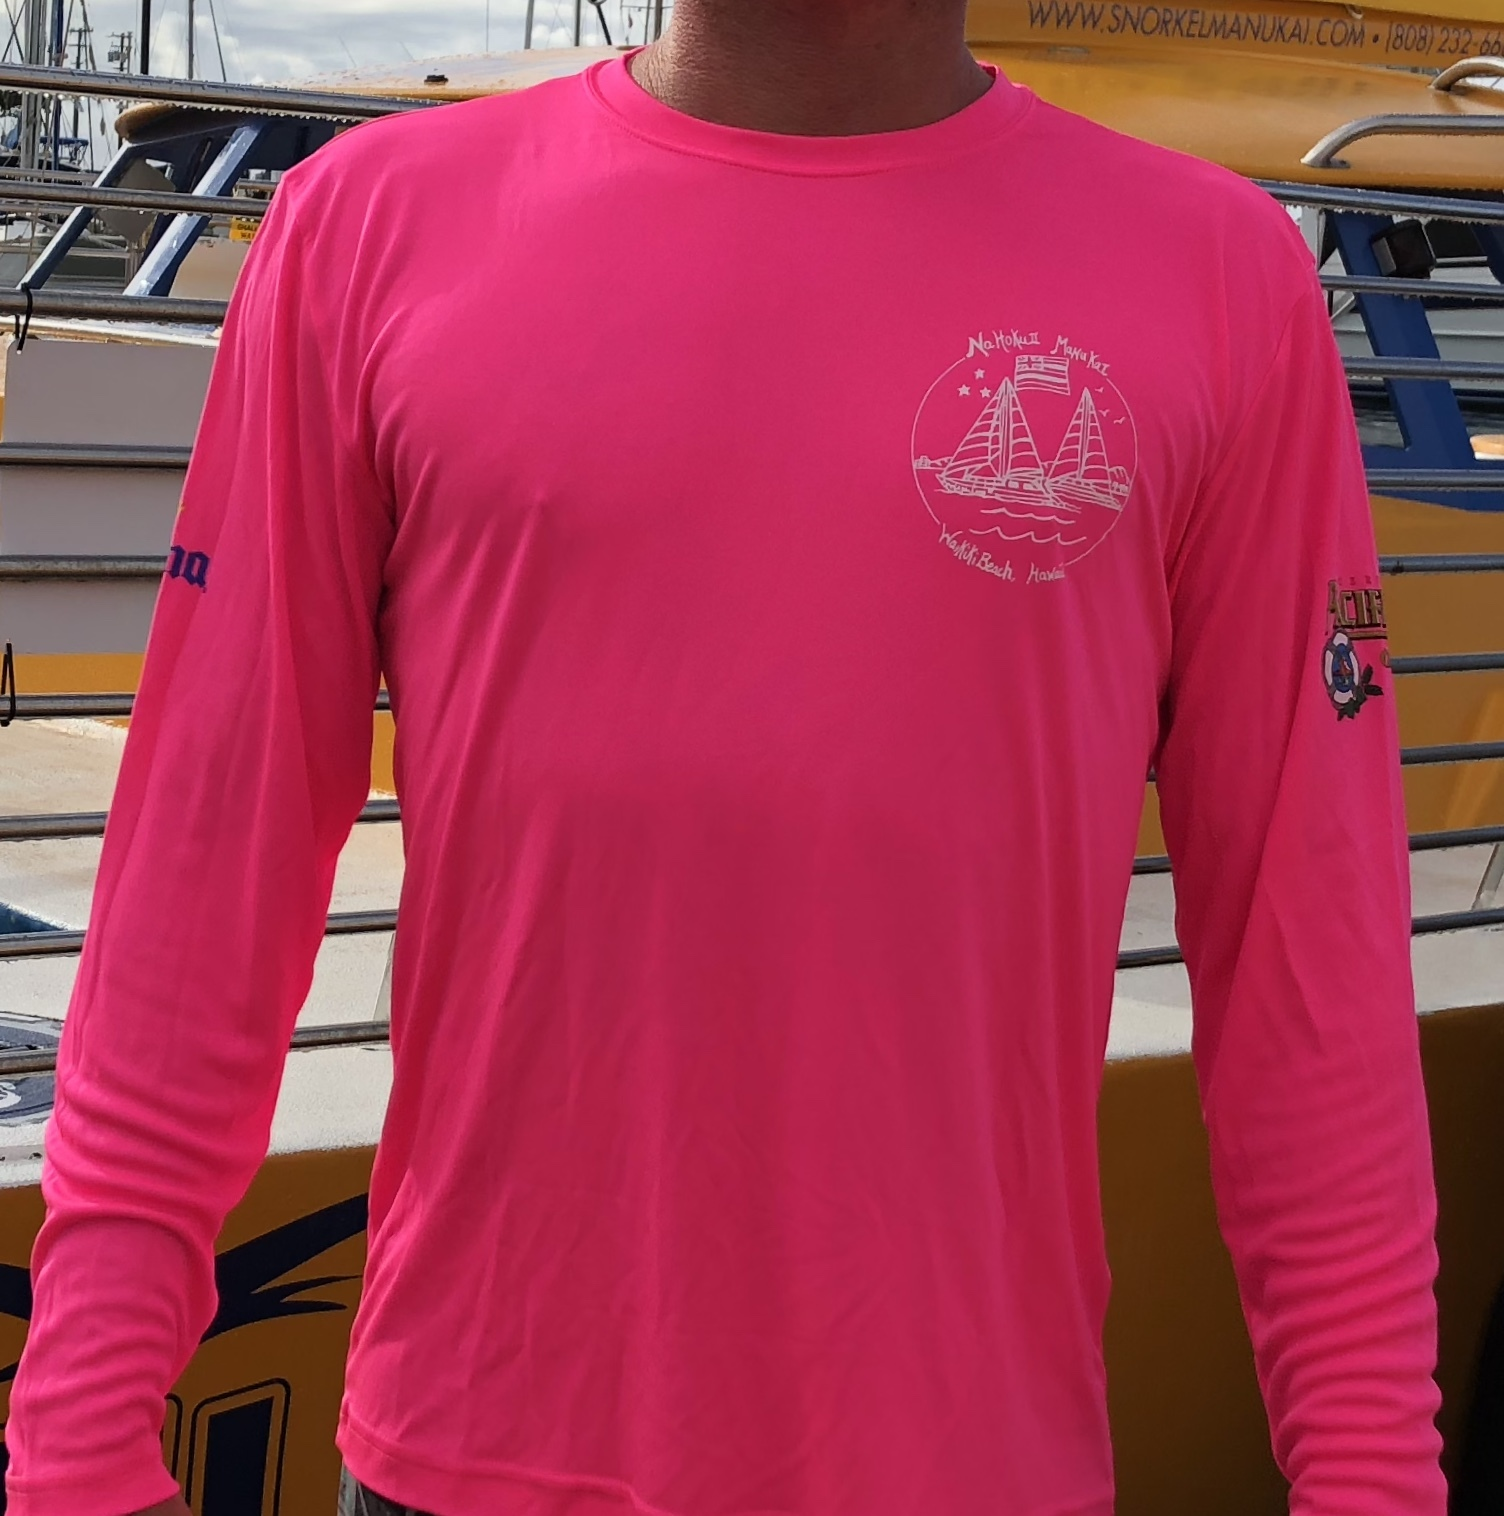 PINK DRY FIT CREW SHIRT